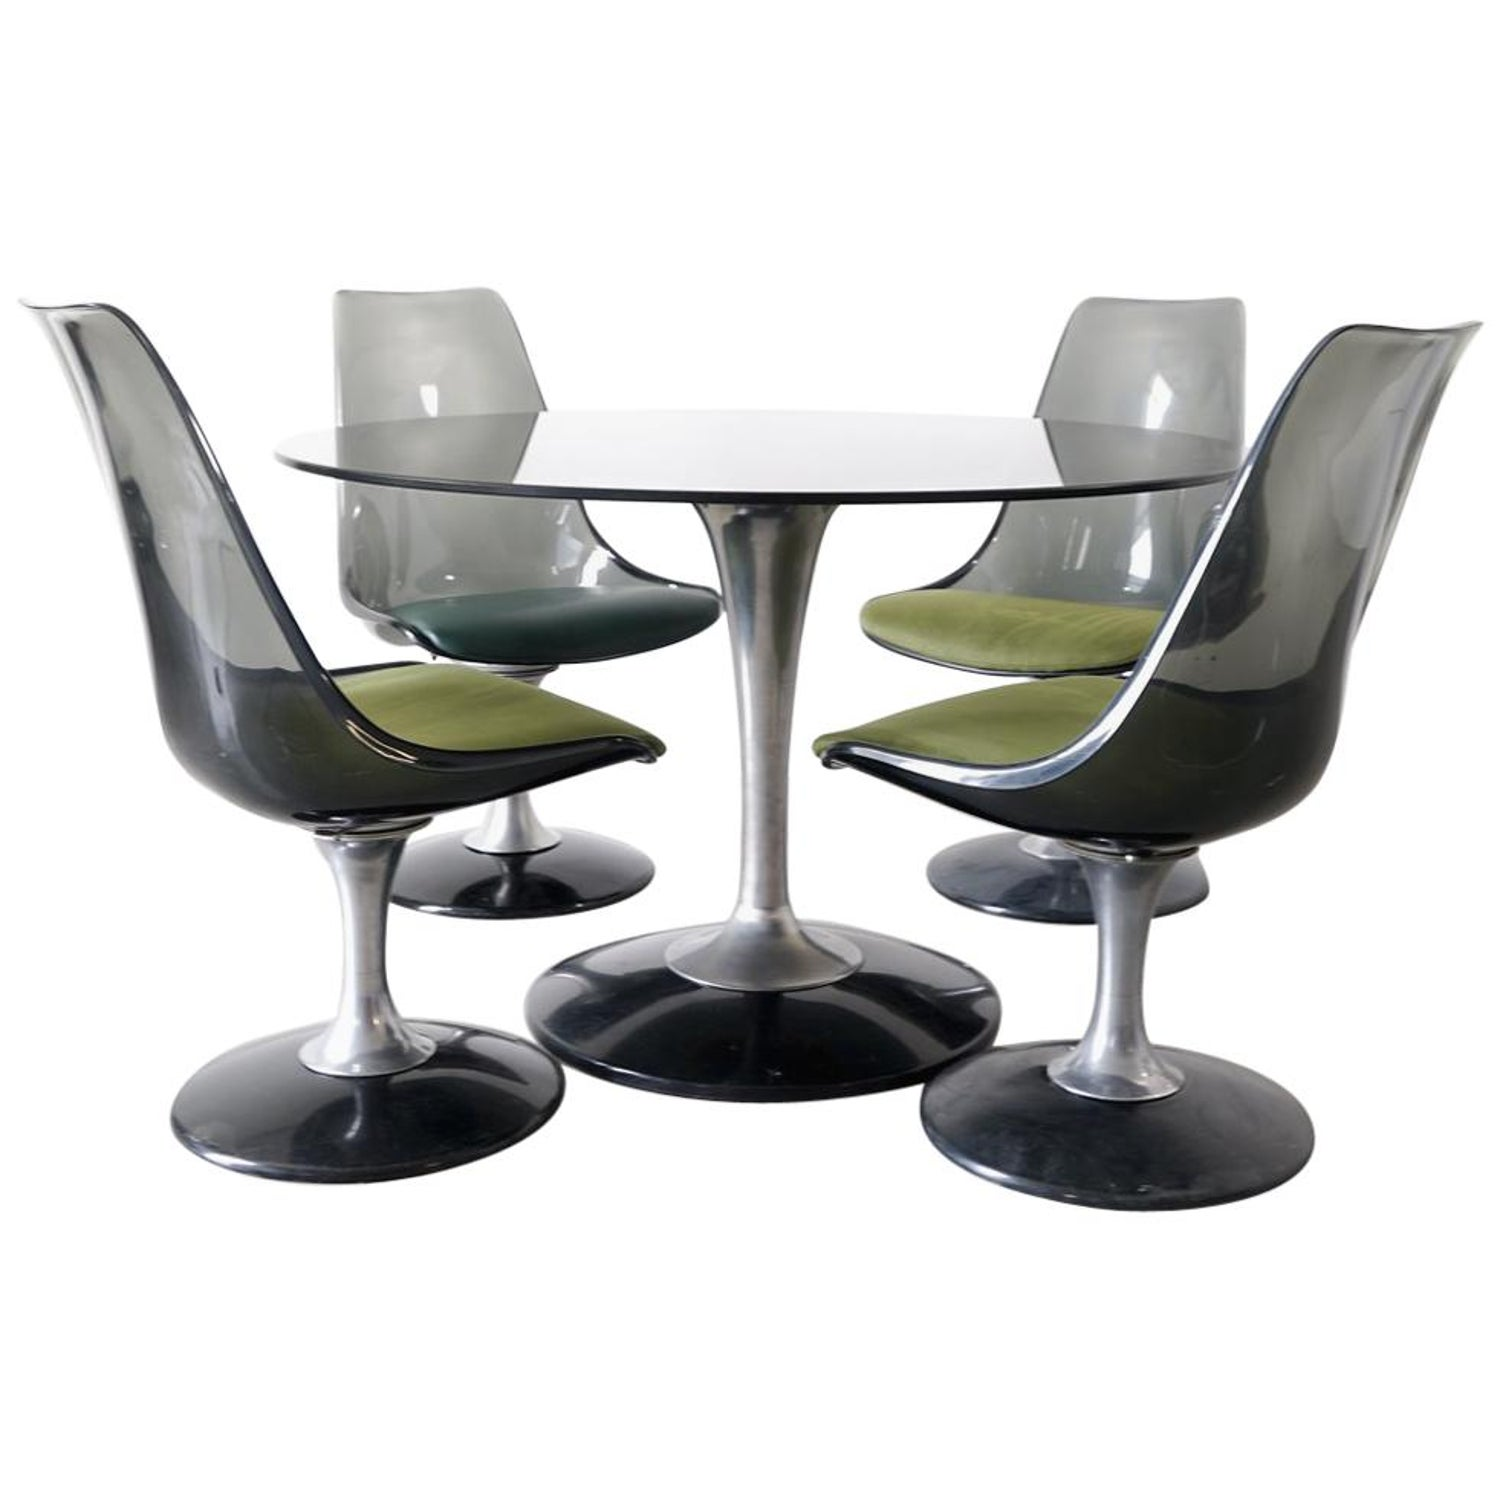 The Chromcraft Metalcraft G D Swivel Tilt Caster Dinette Set Combines Gray Metal And A Driftwood Wood Finish To Form Beautiful Comfortable